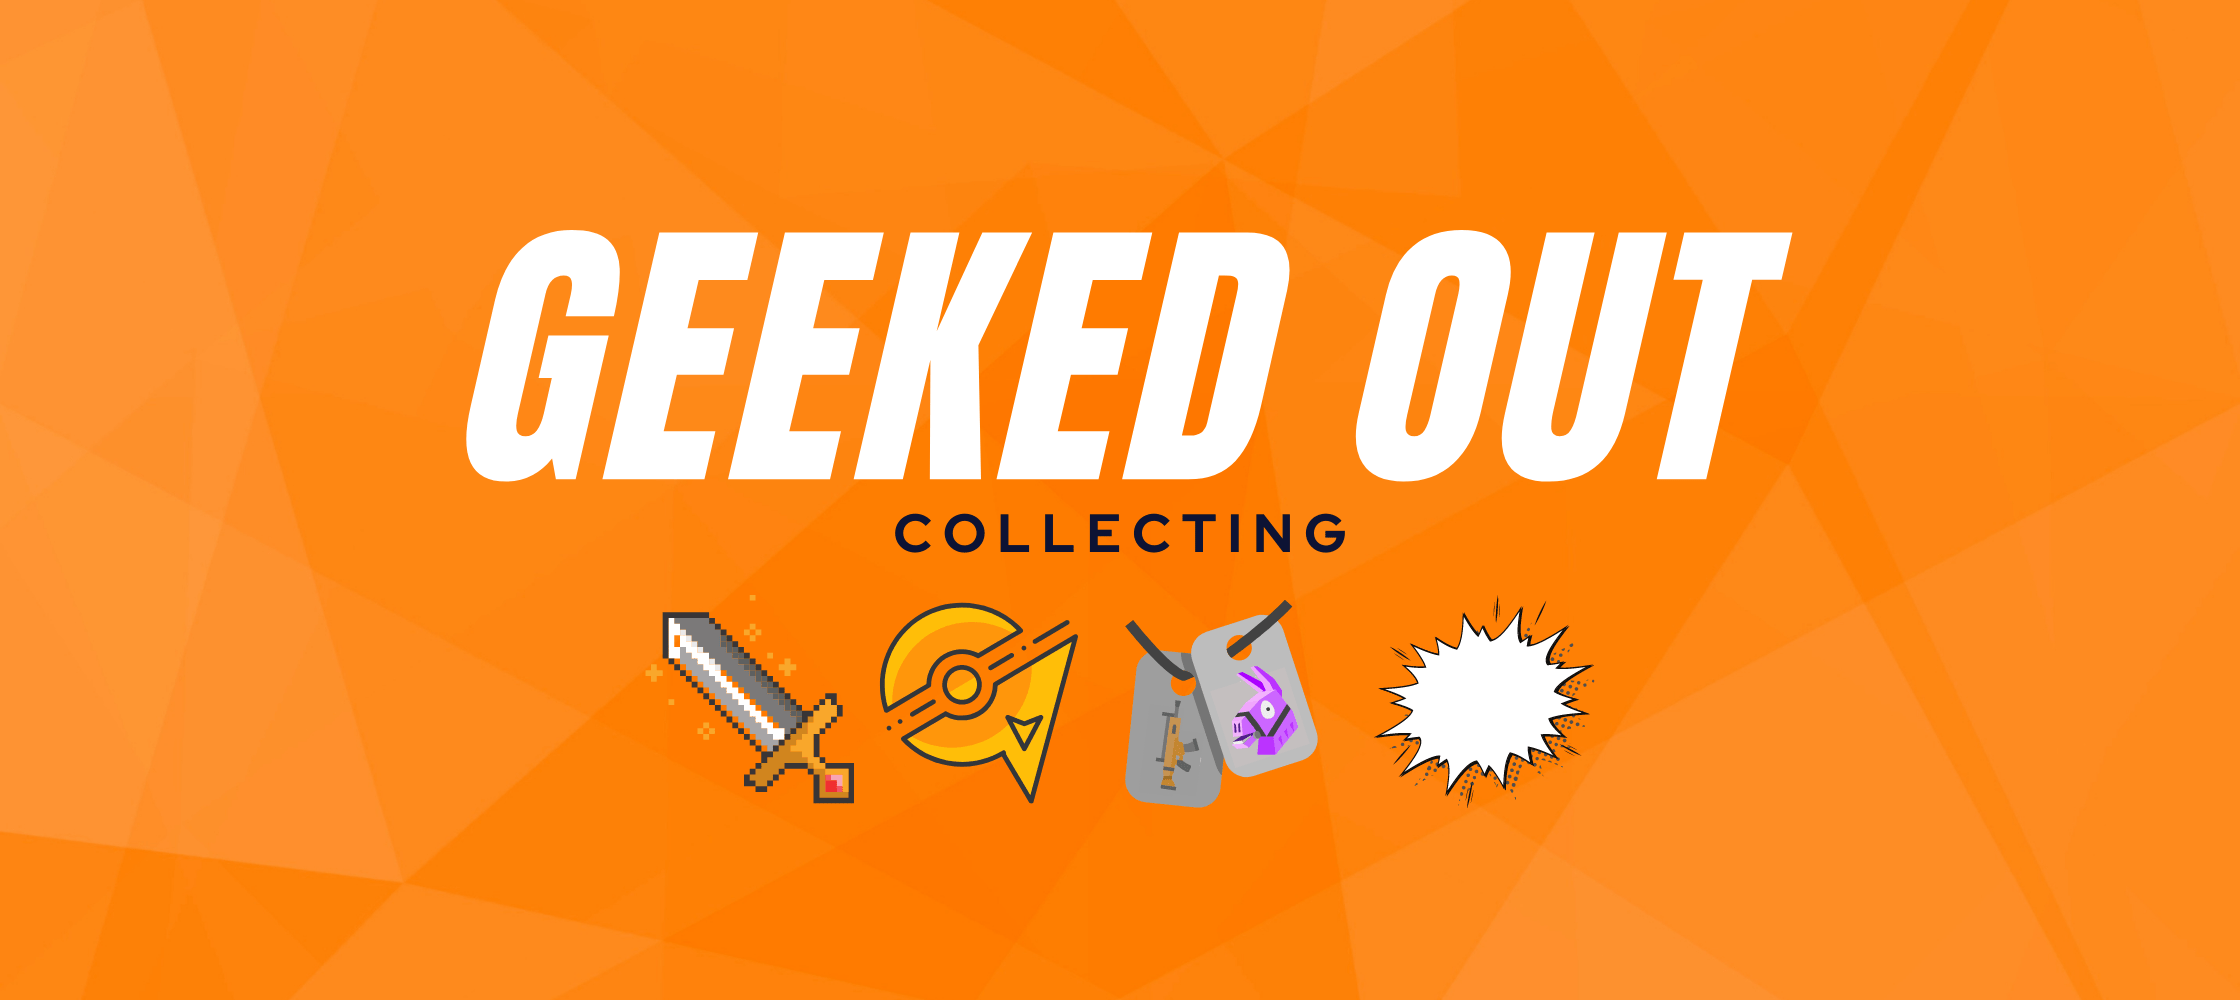 Geeked Out Collecting Texture Banner